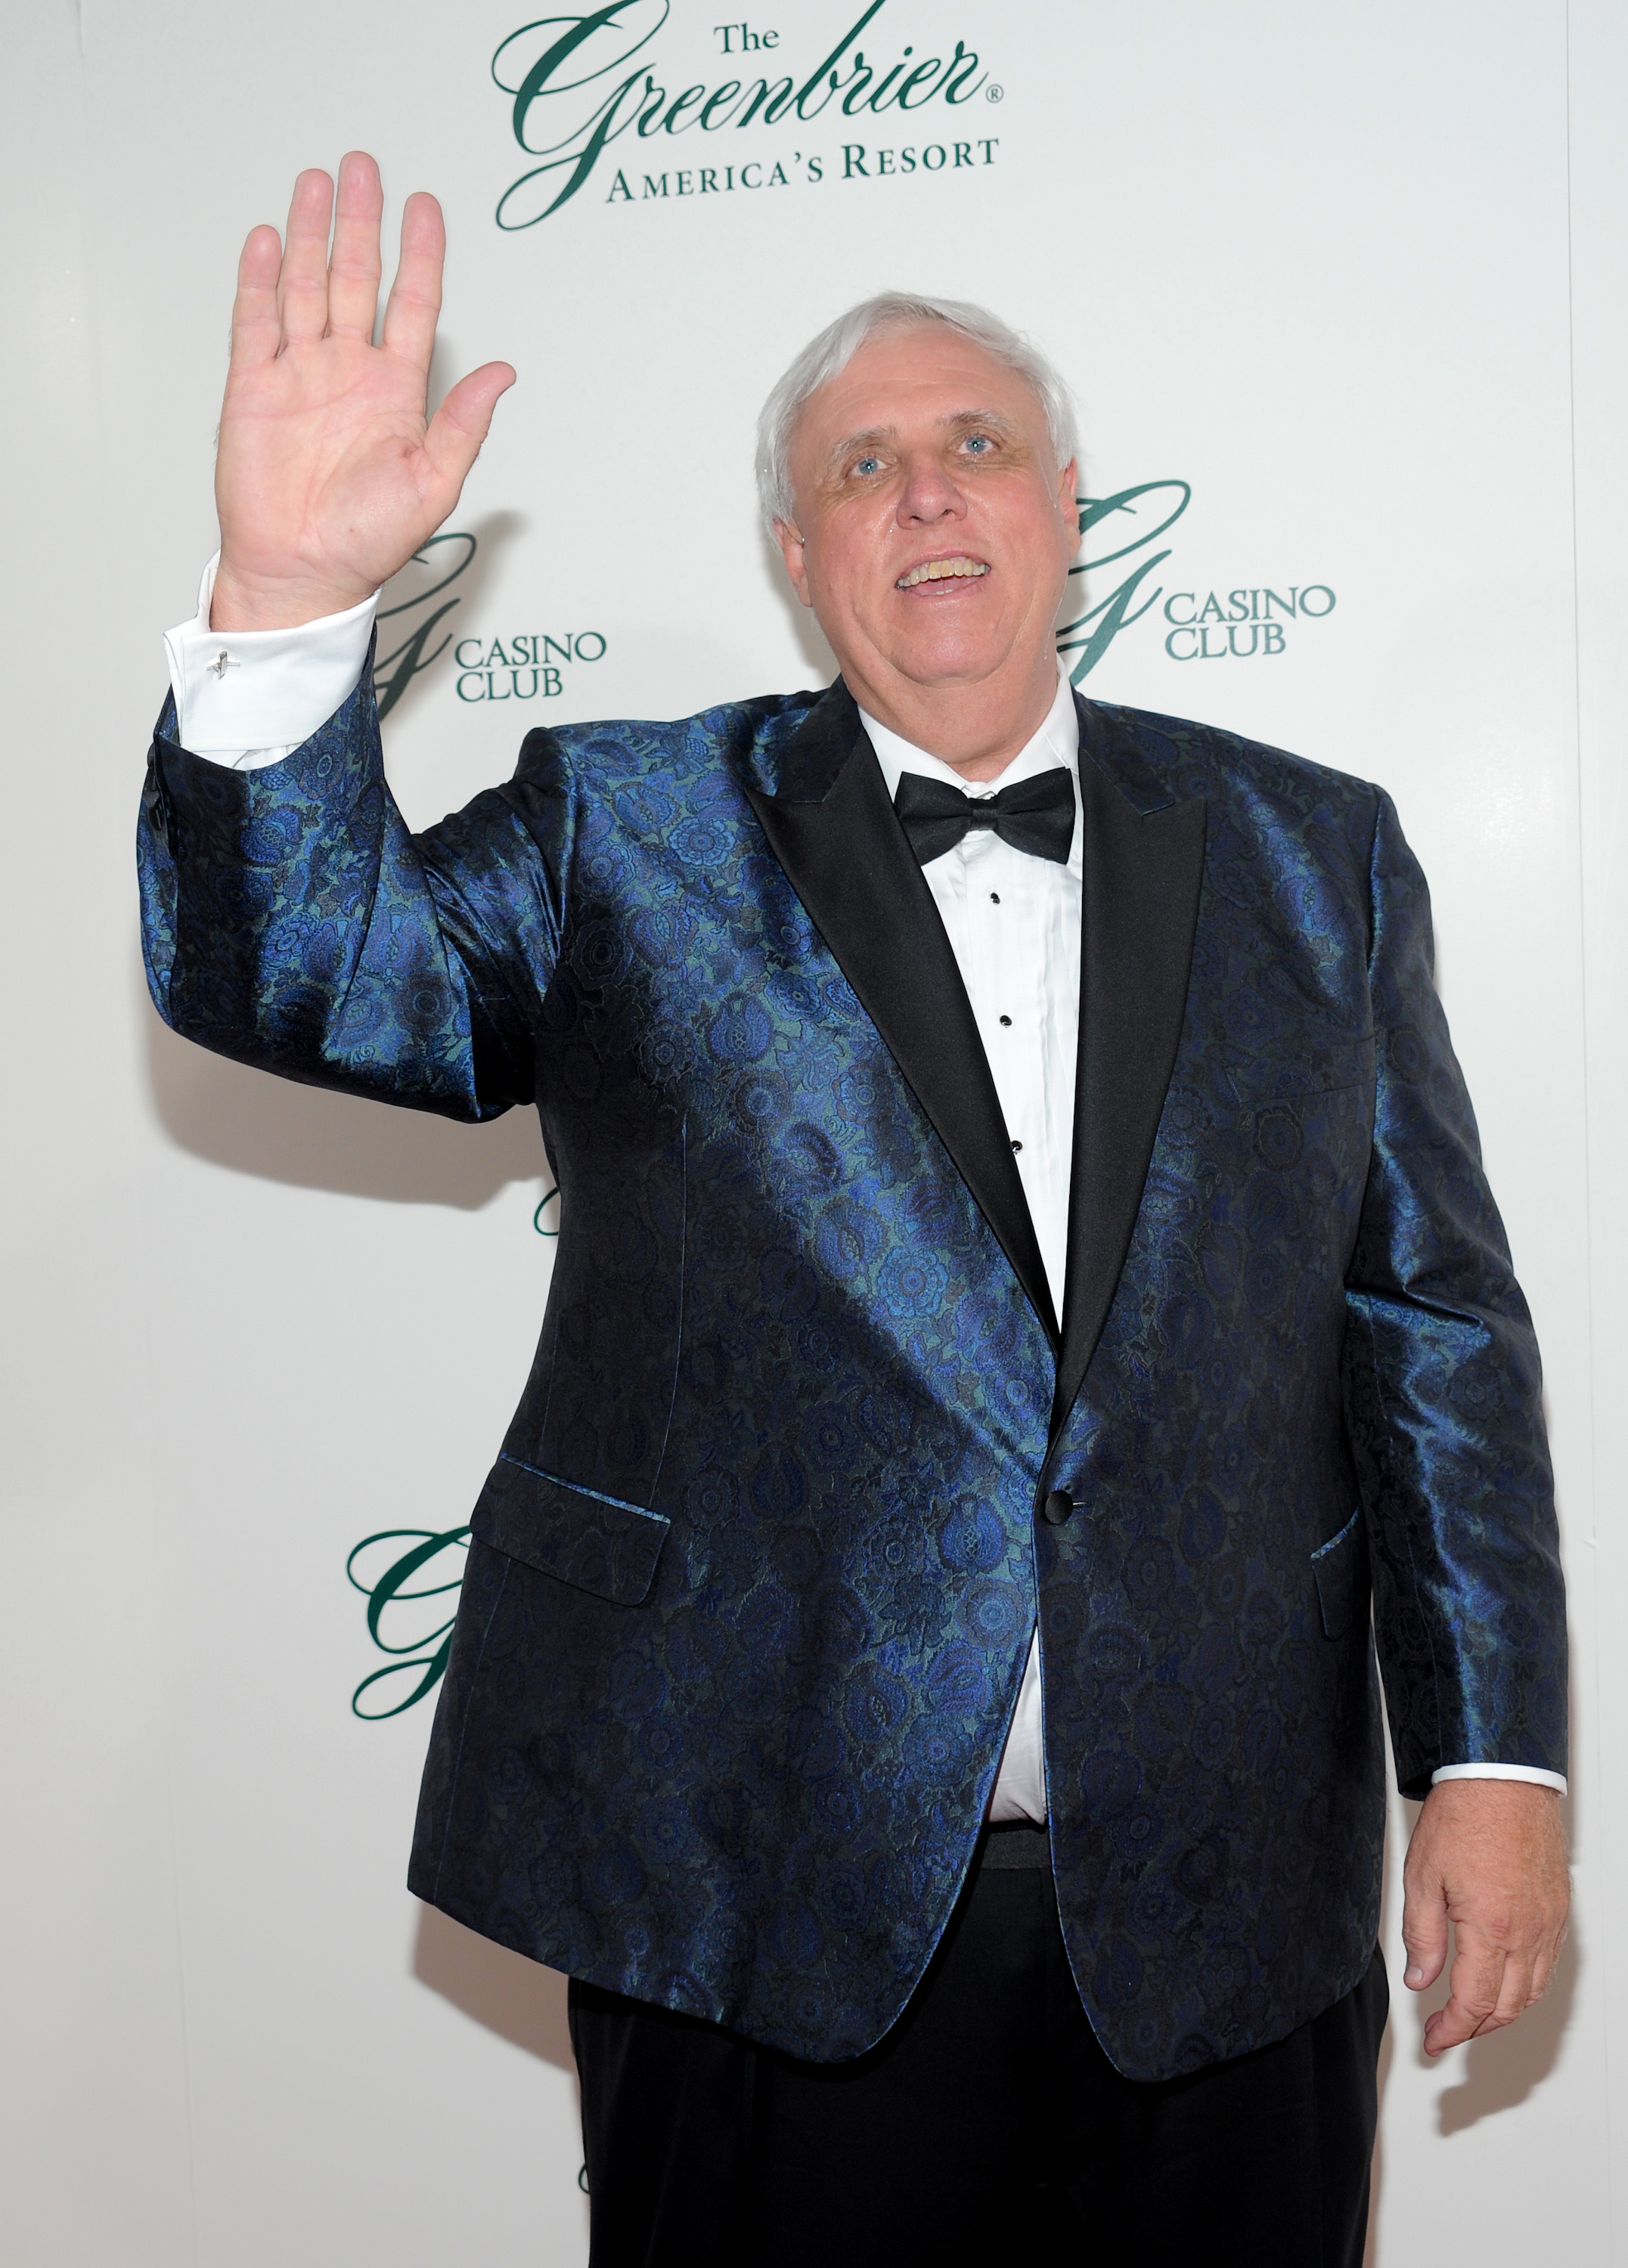 Jim Justice attends the gala opening of The Greenbrier Casino Club on July 2.